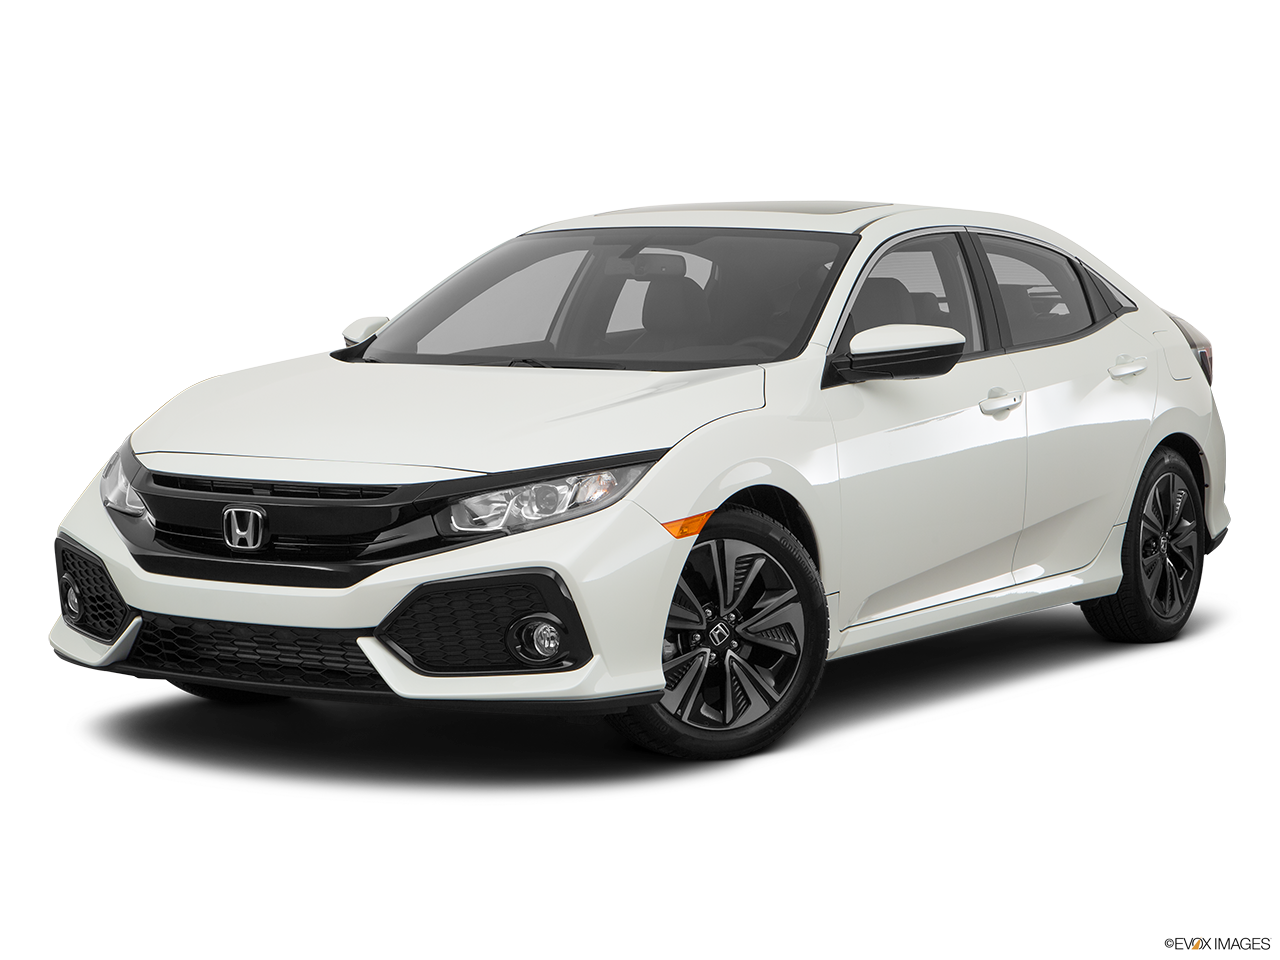 Test Drive A 2017 Honda Civic at Honda of El Cajon near San Diego